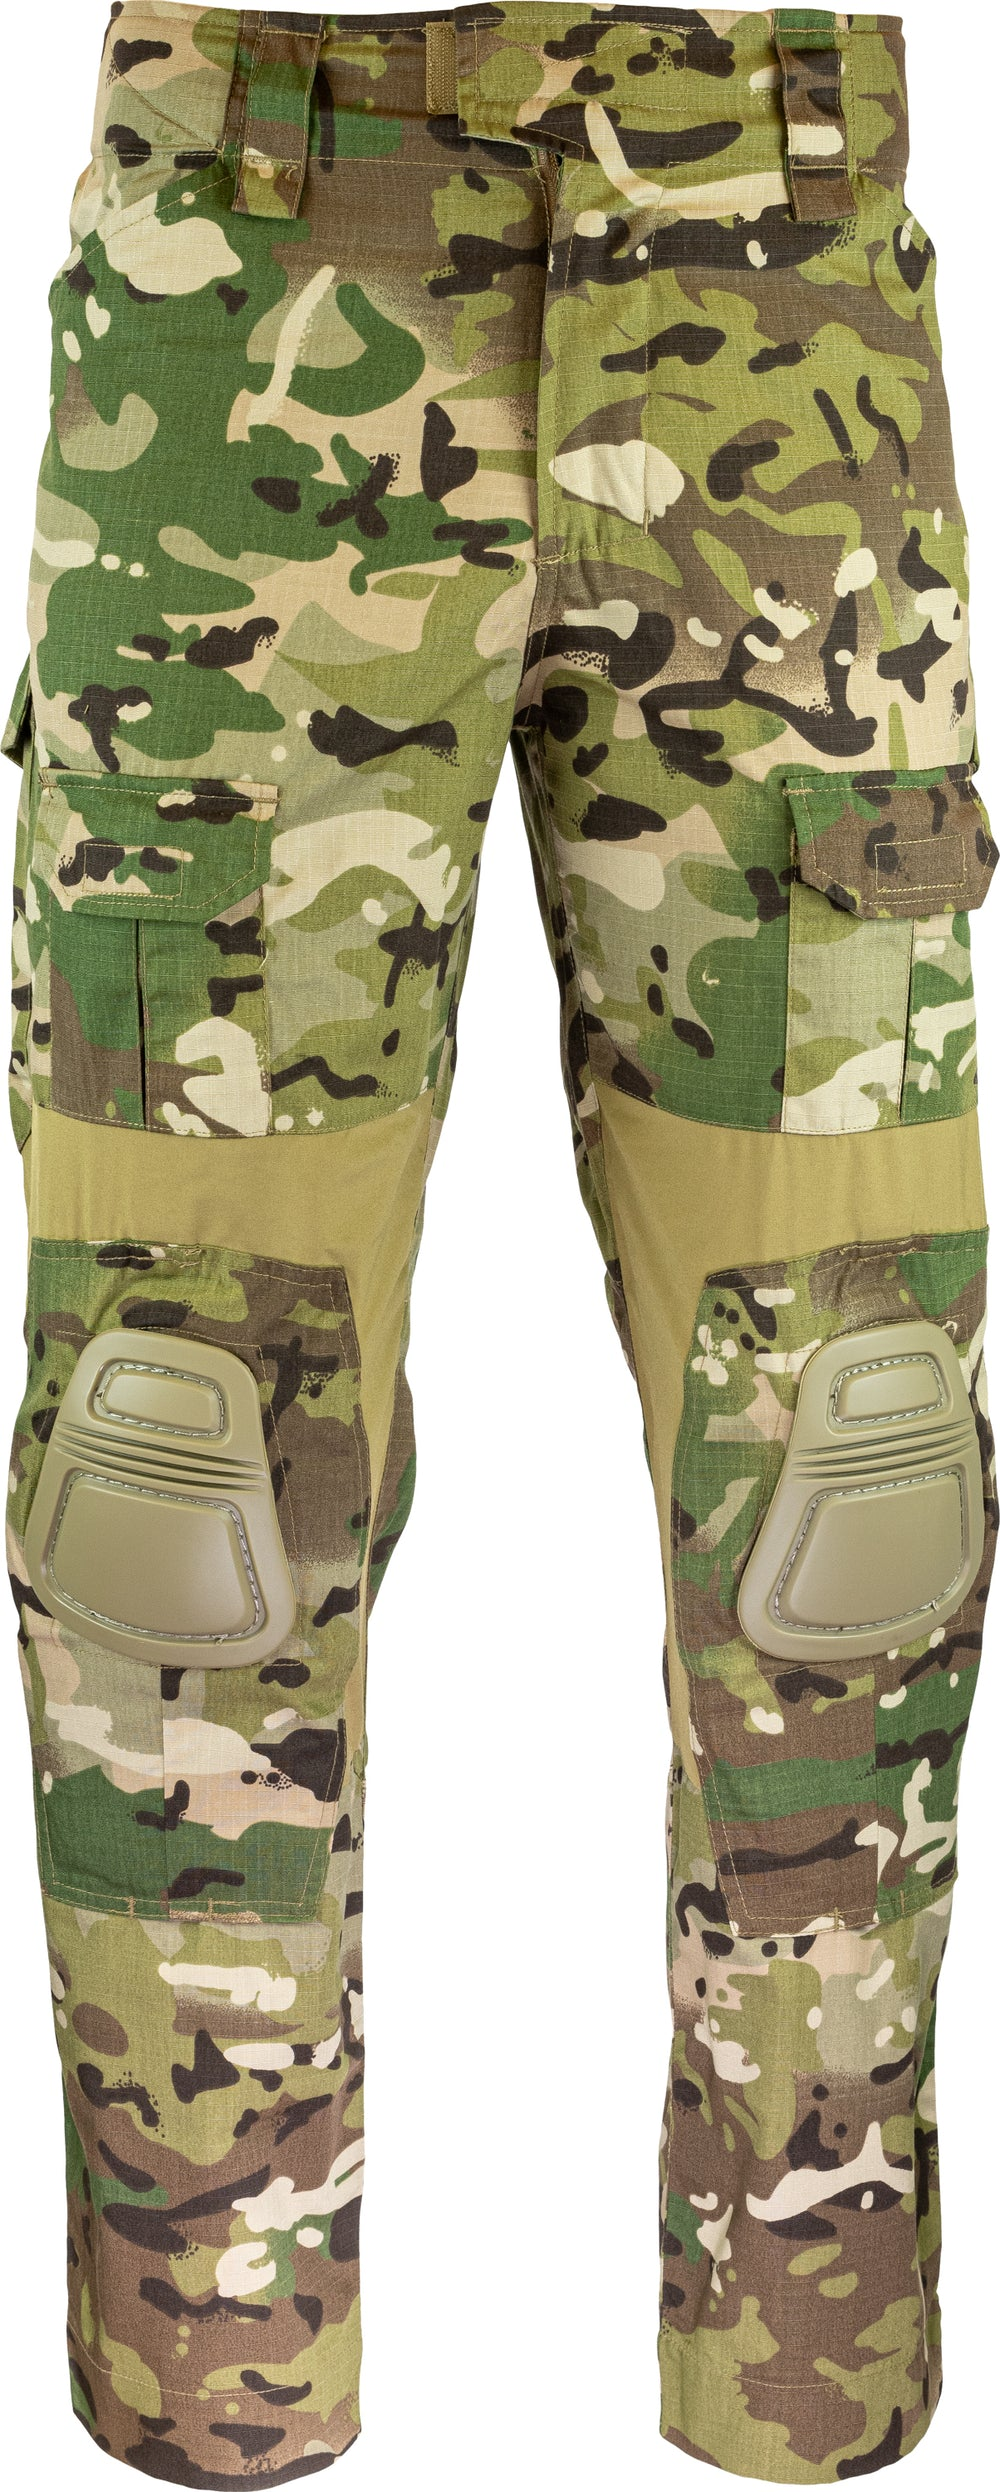 Viper Tactical GEN2 Elite Trousers VCAM